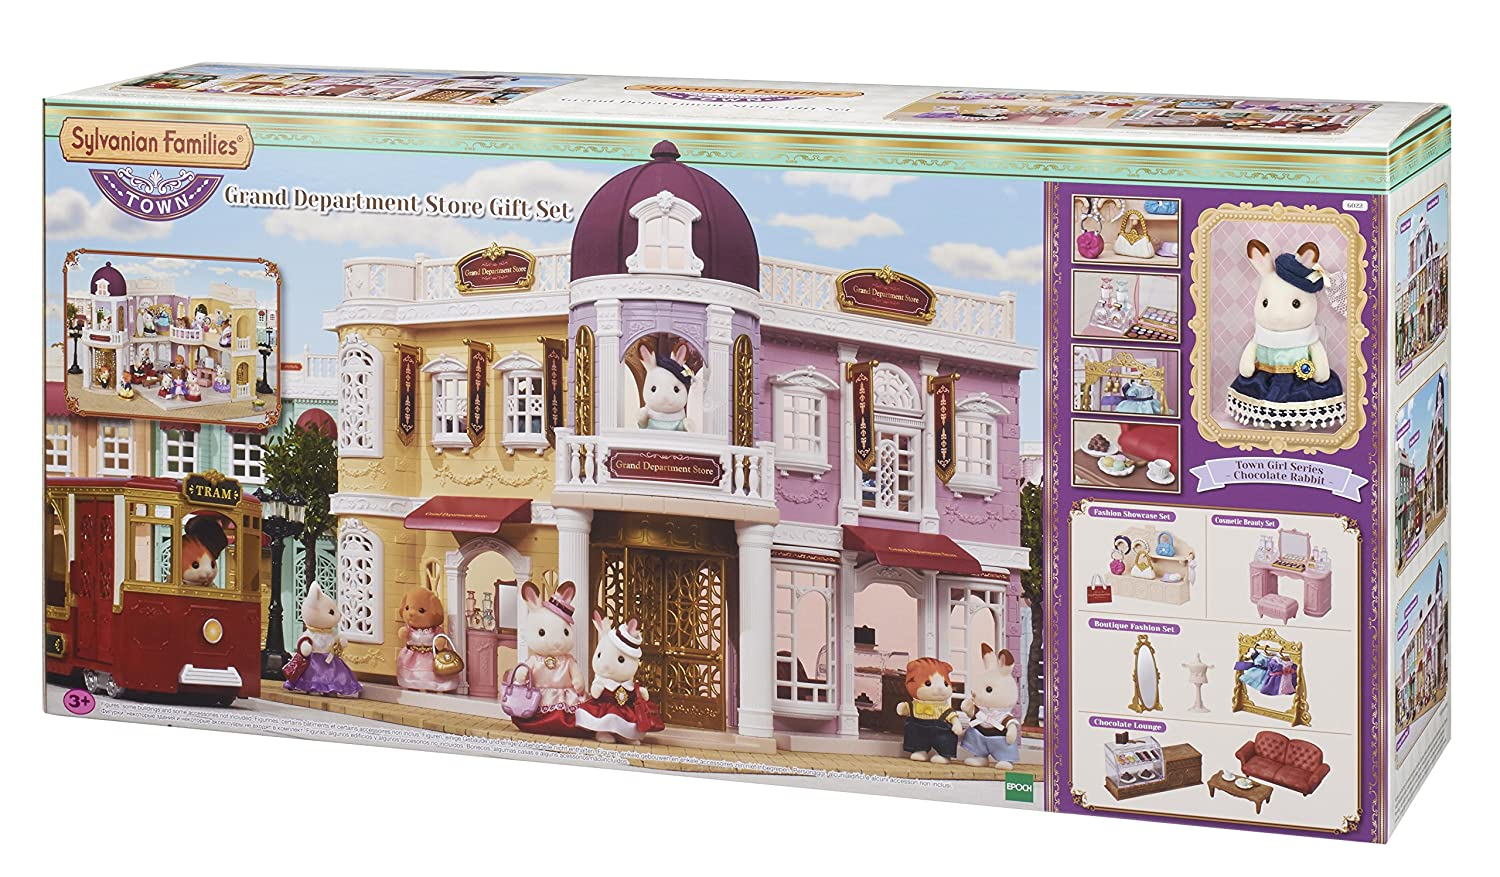 Sylvanian families 6022 grand department store gift playset new town series one size sylvanian families amazon co uk toys games